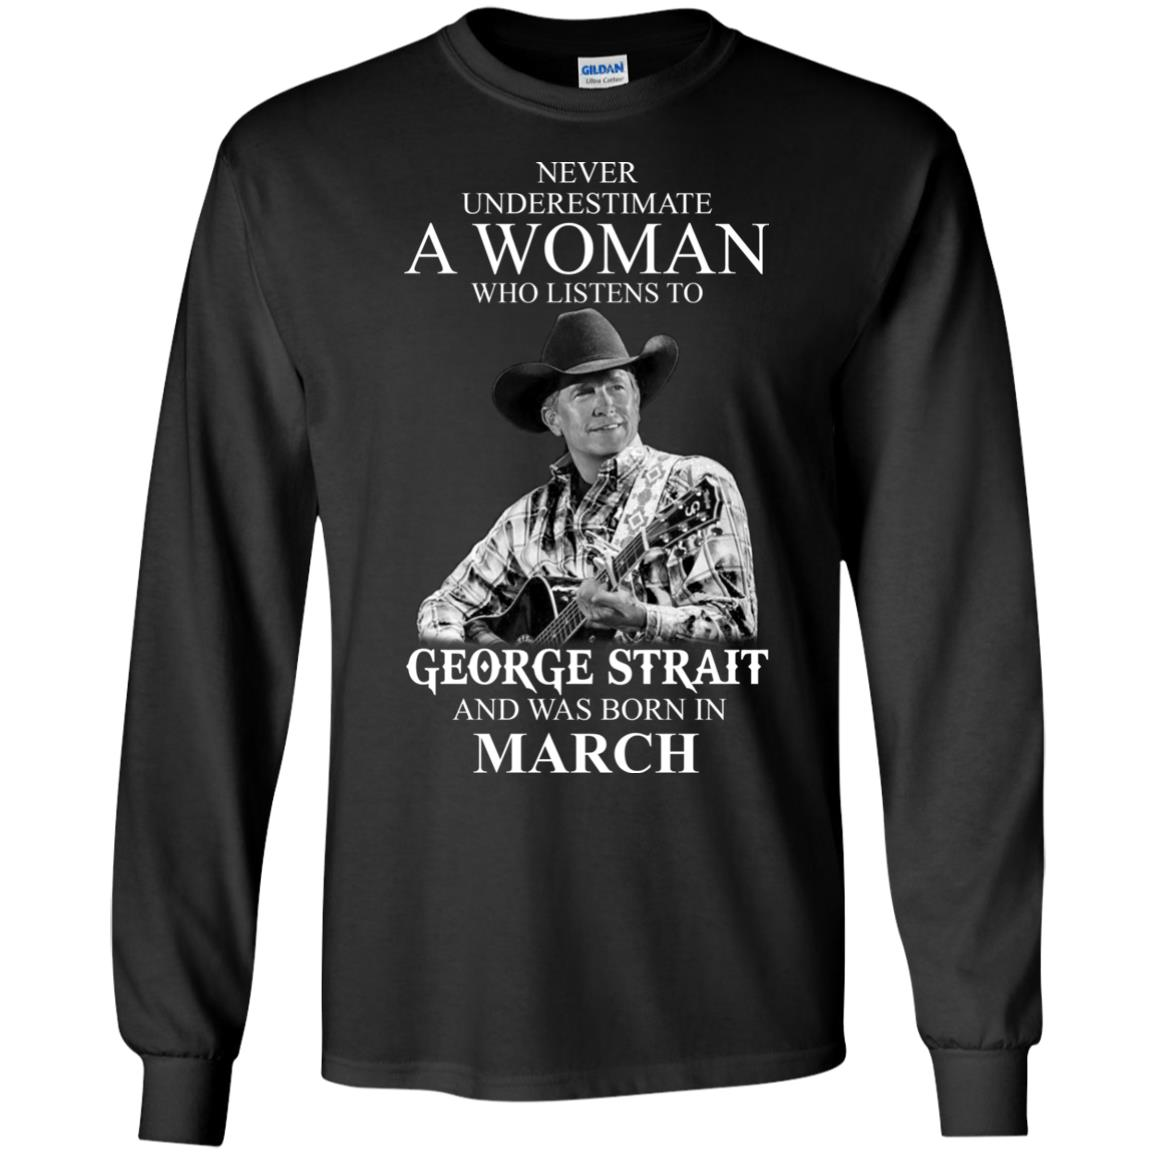 image 436 - Never Underestimate A Woman Who Listens To George Strait And Was Born In March shirt